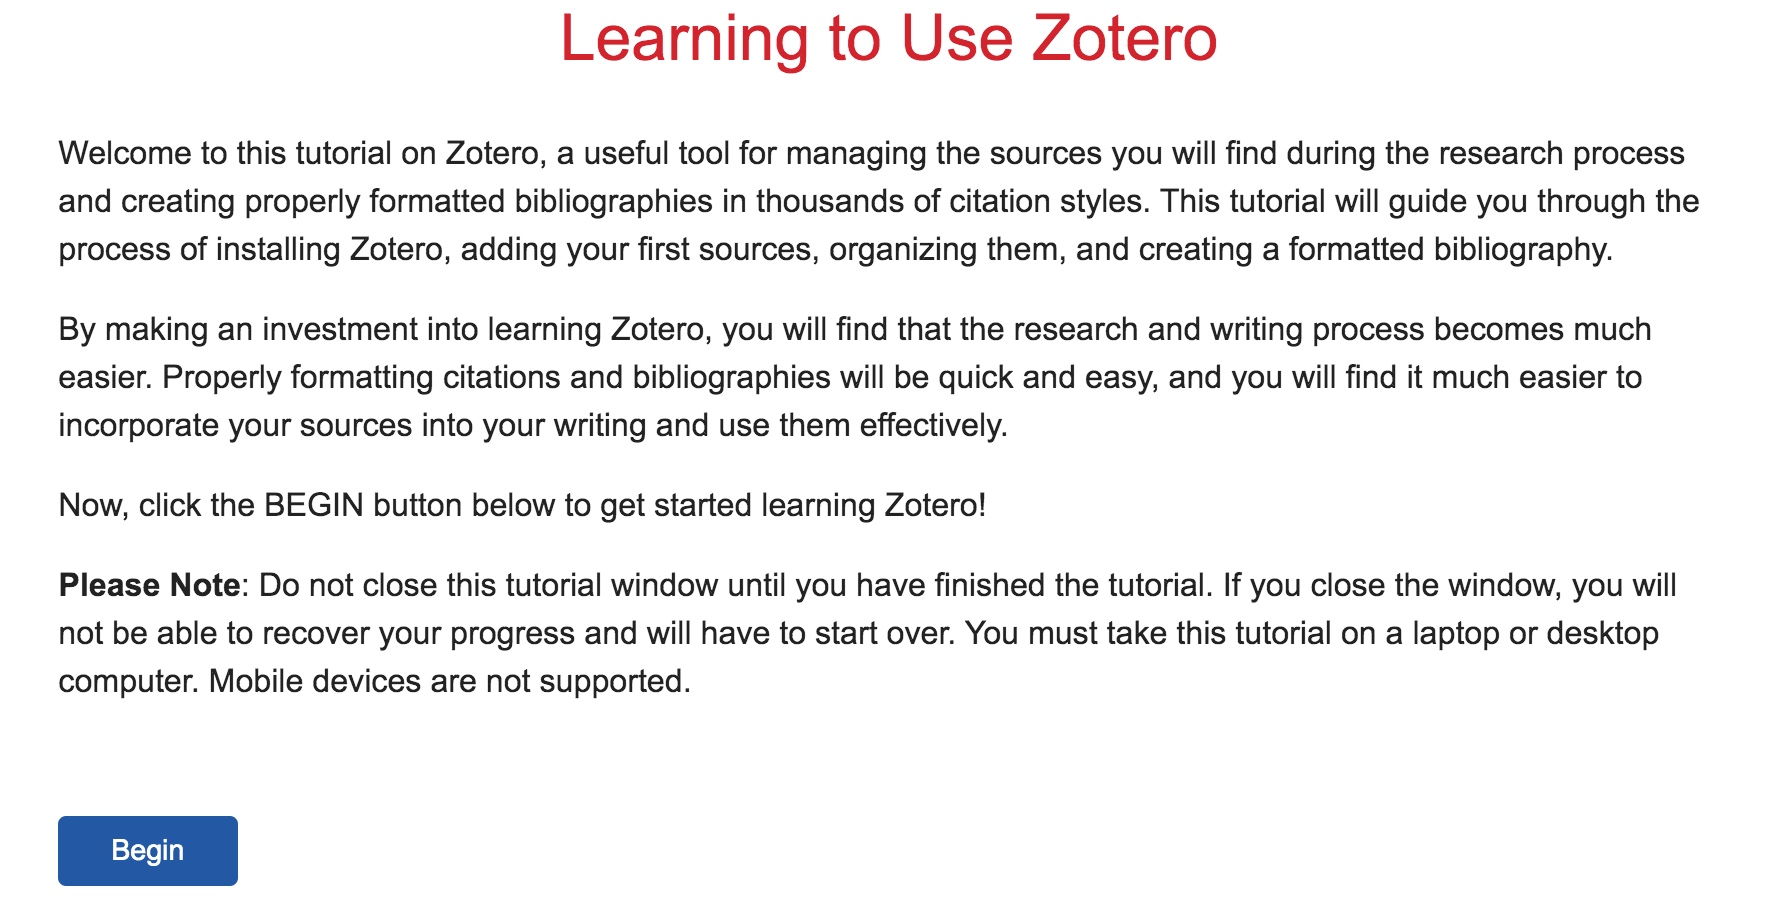 Learning to Use Zotero